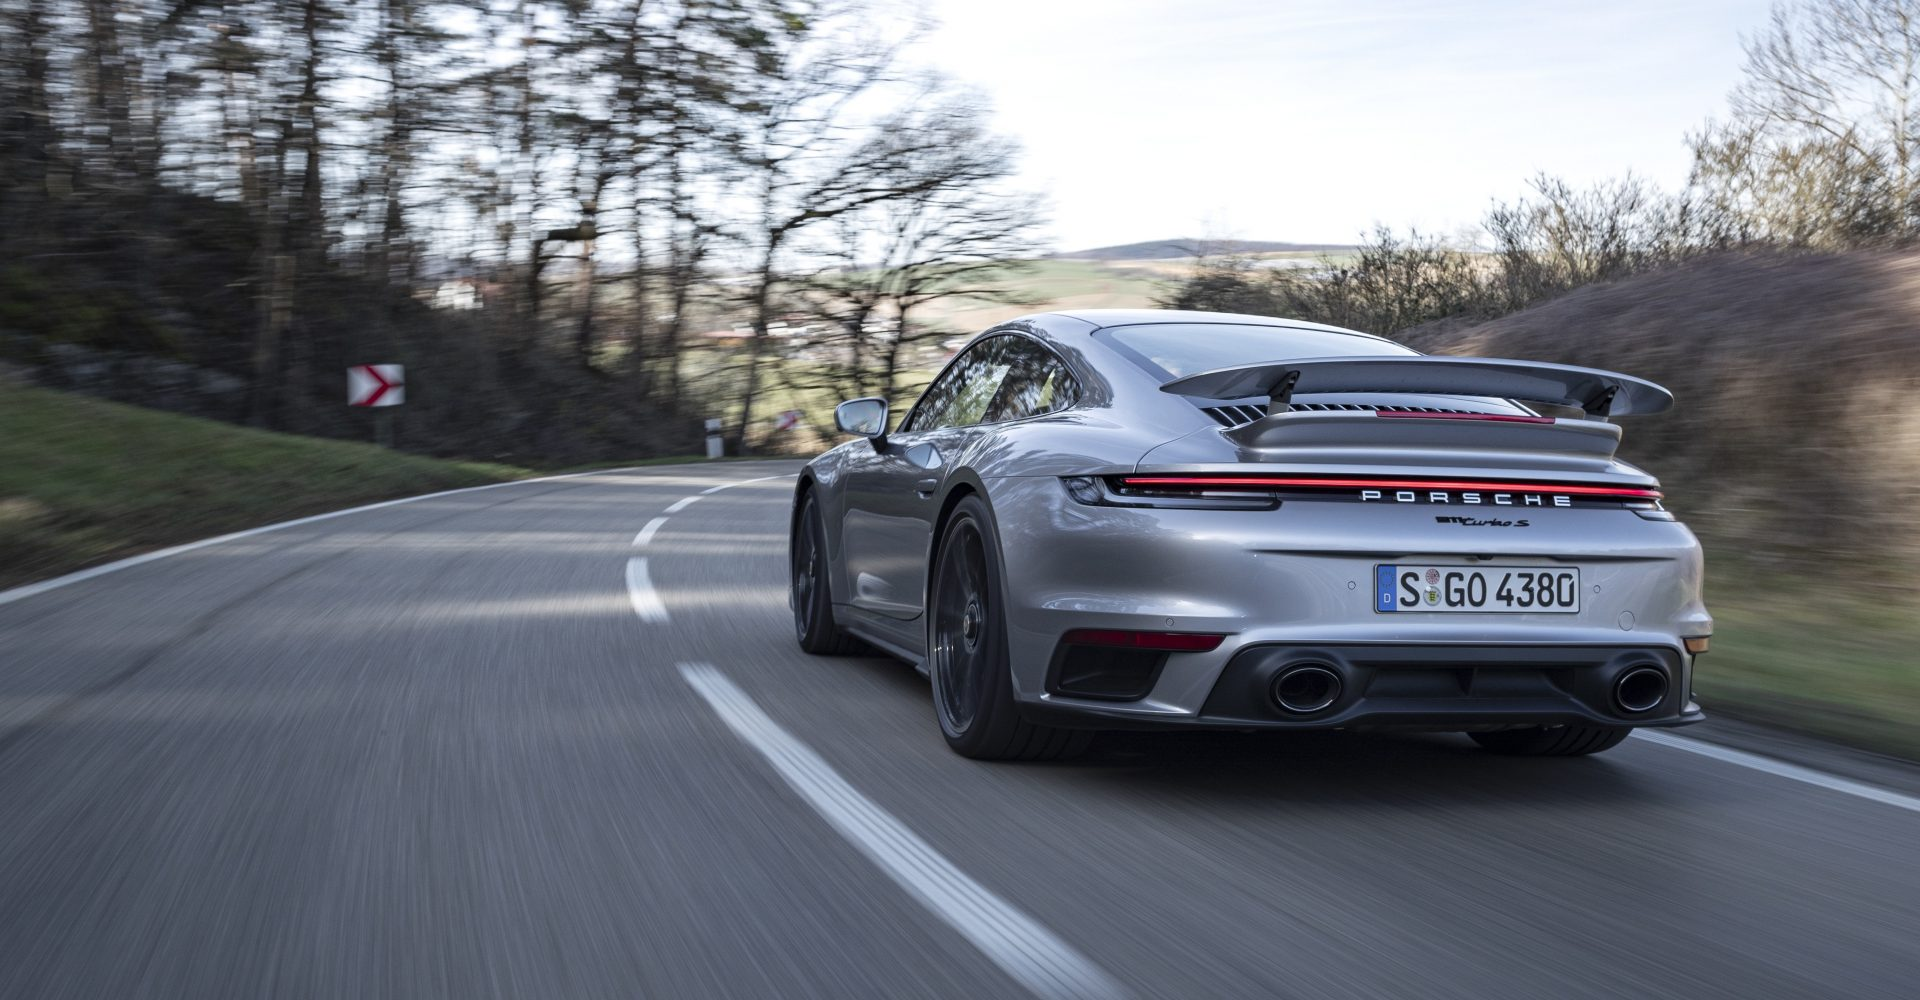 Porsche introduces hardcore Lightweight package for 911 Turbo S